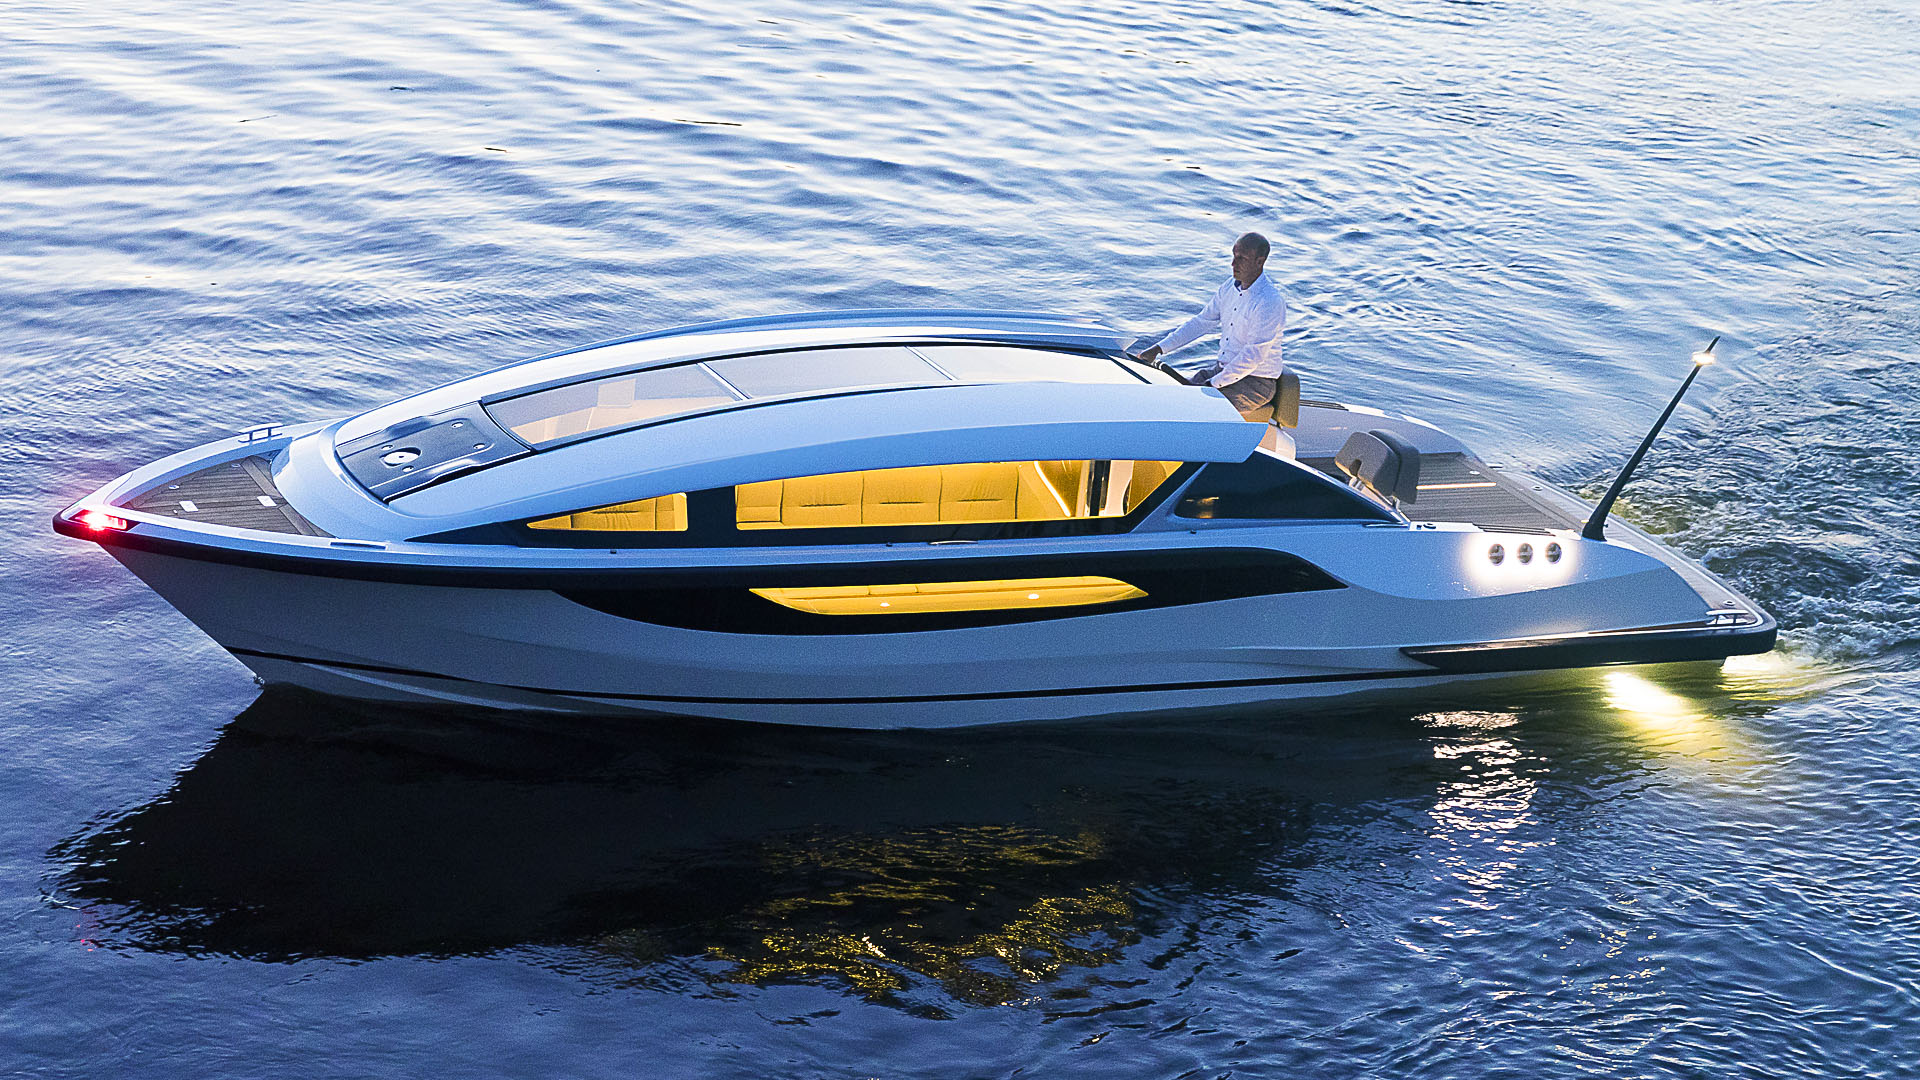 SILVERLINE Semi-Custom Limousine Tender For Superyachts